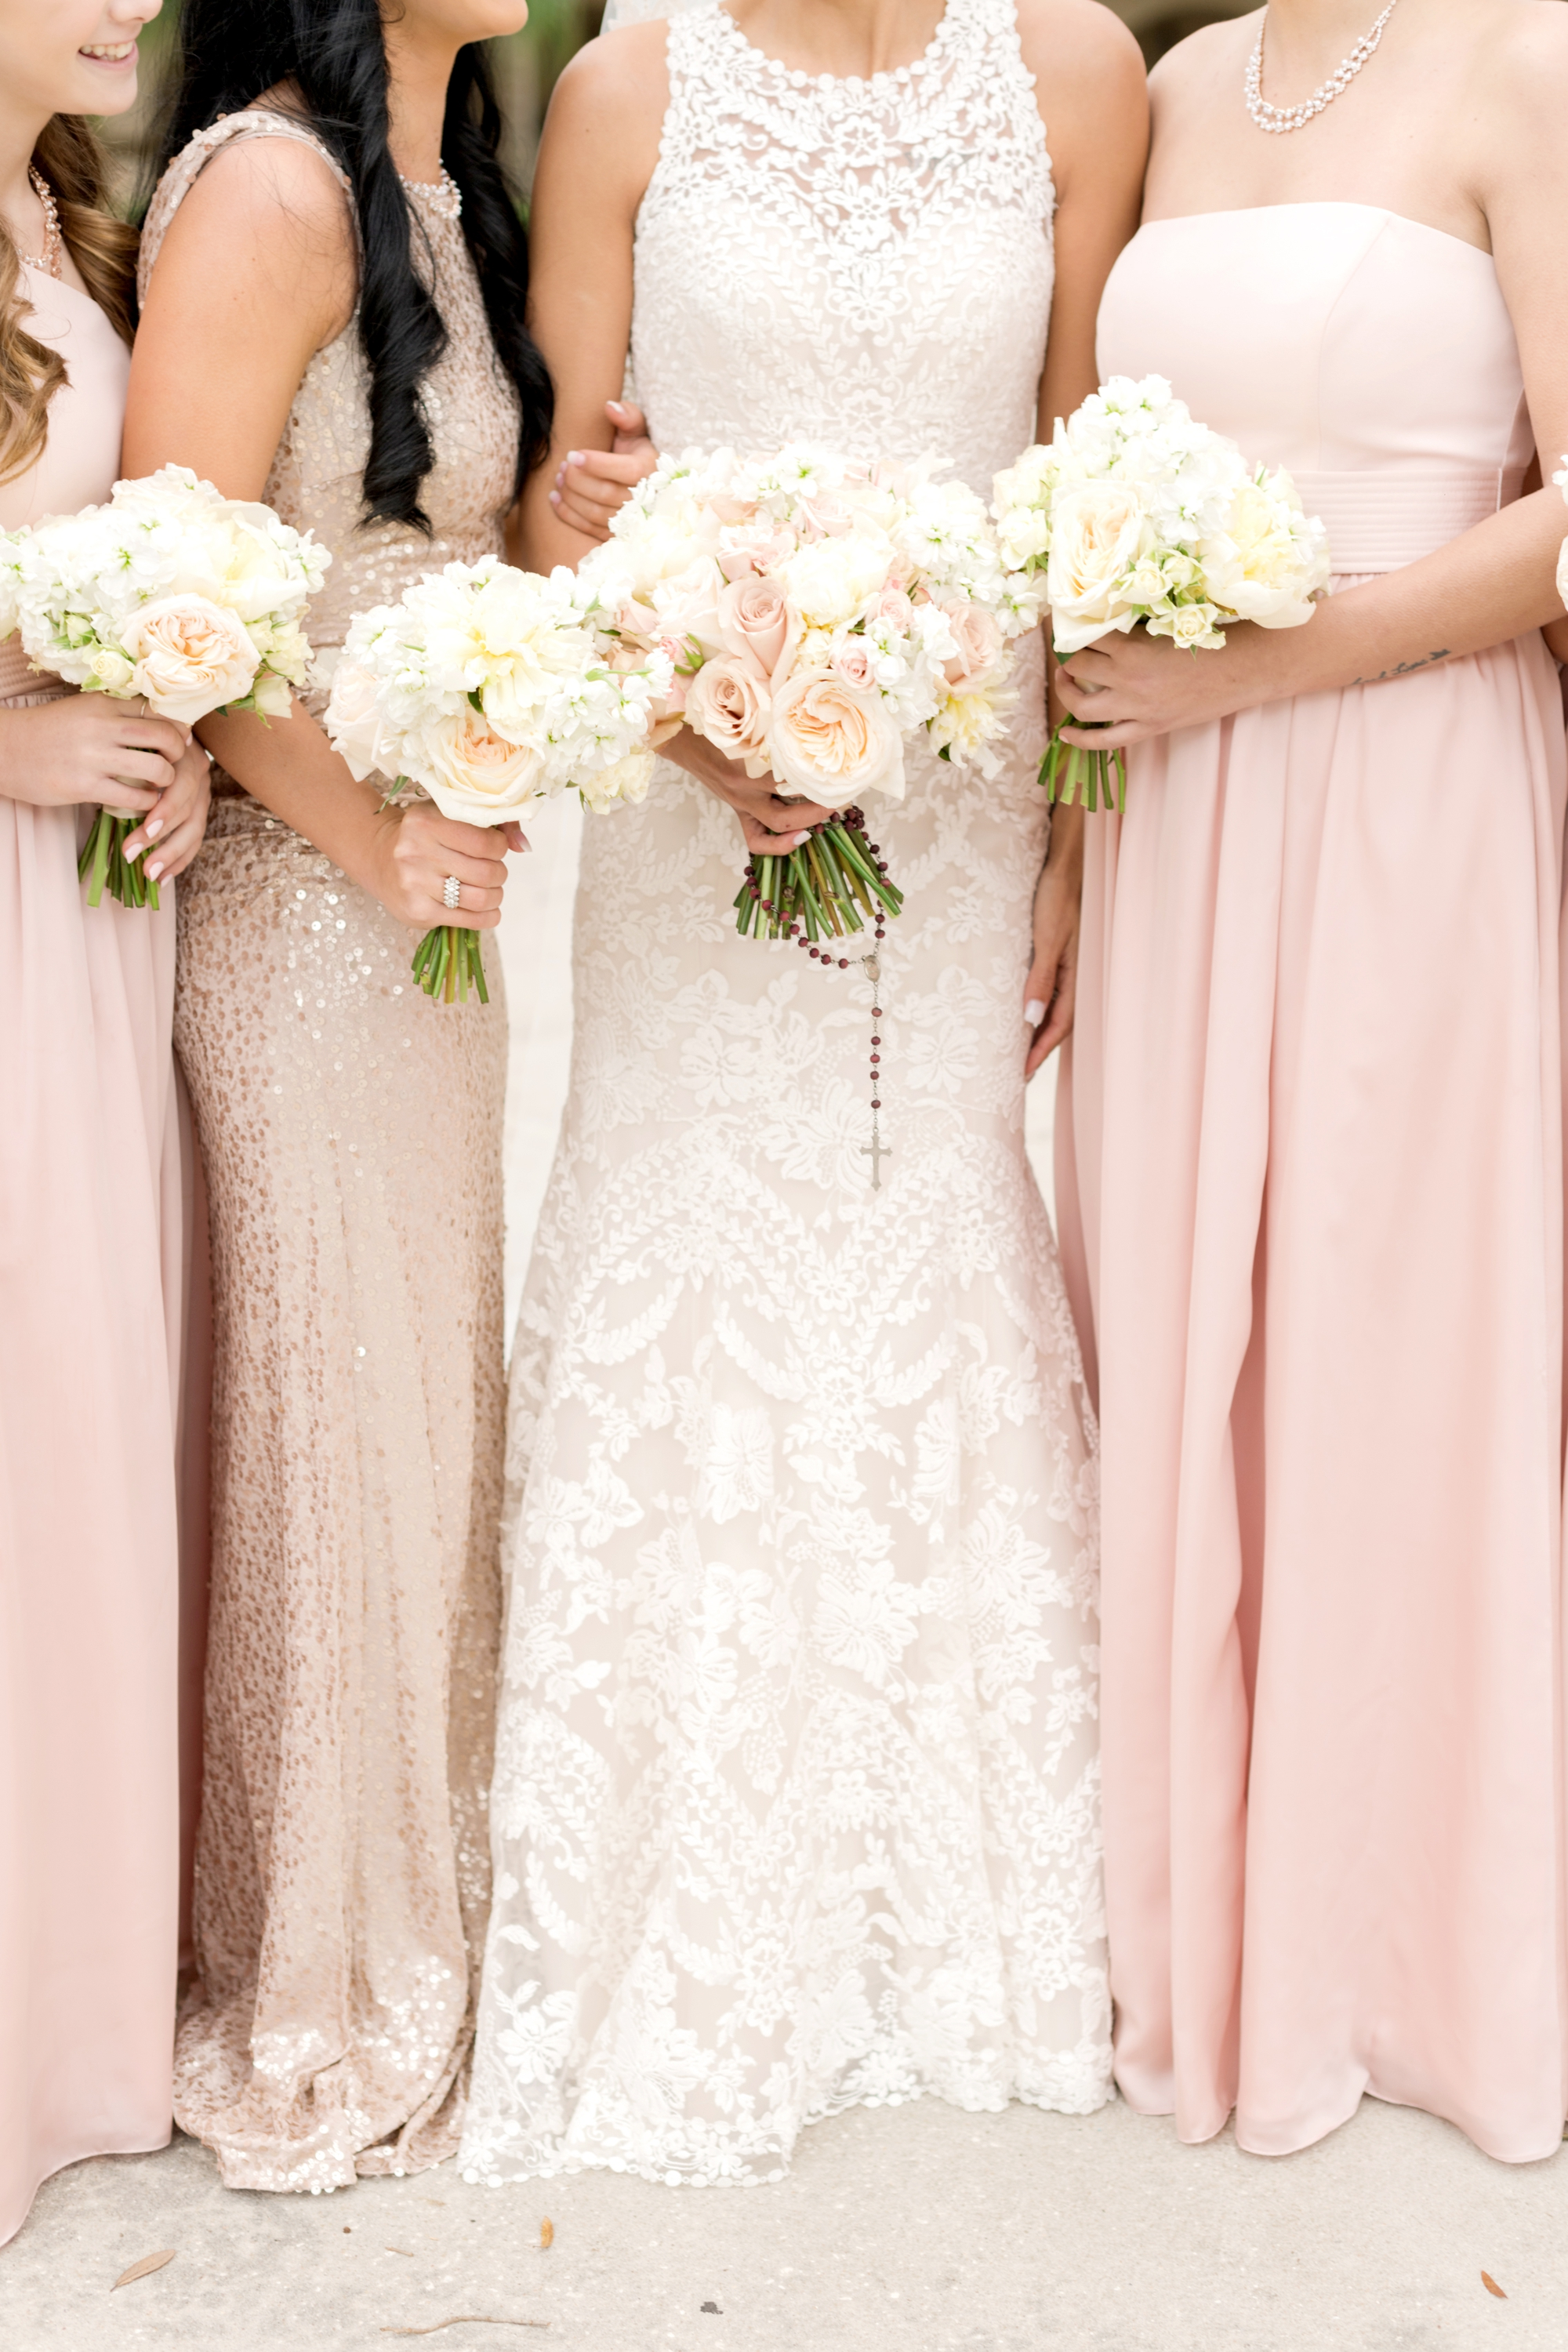 bridal party dresses and flowers